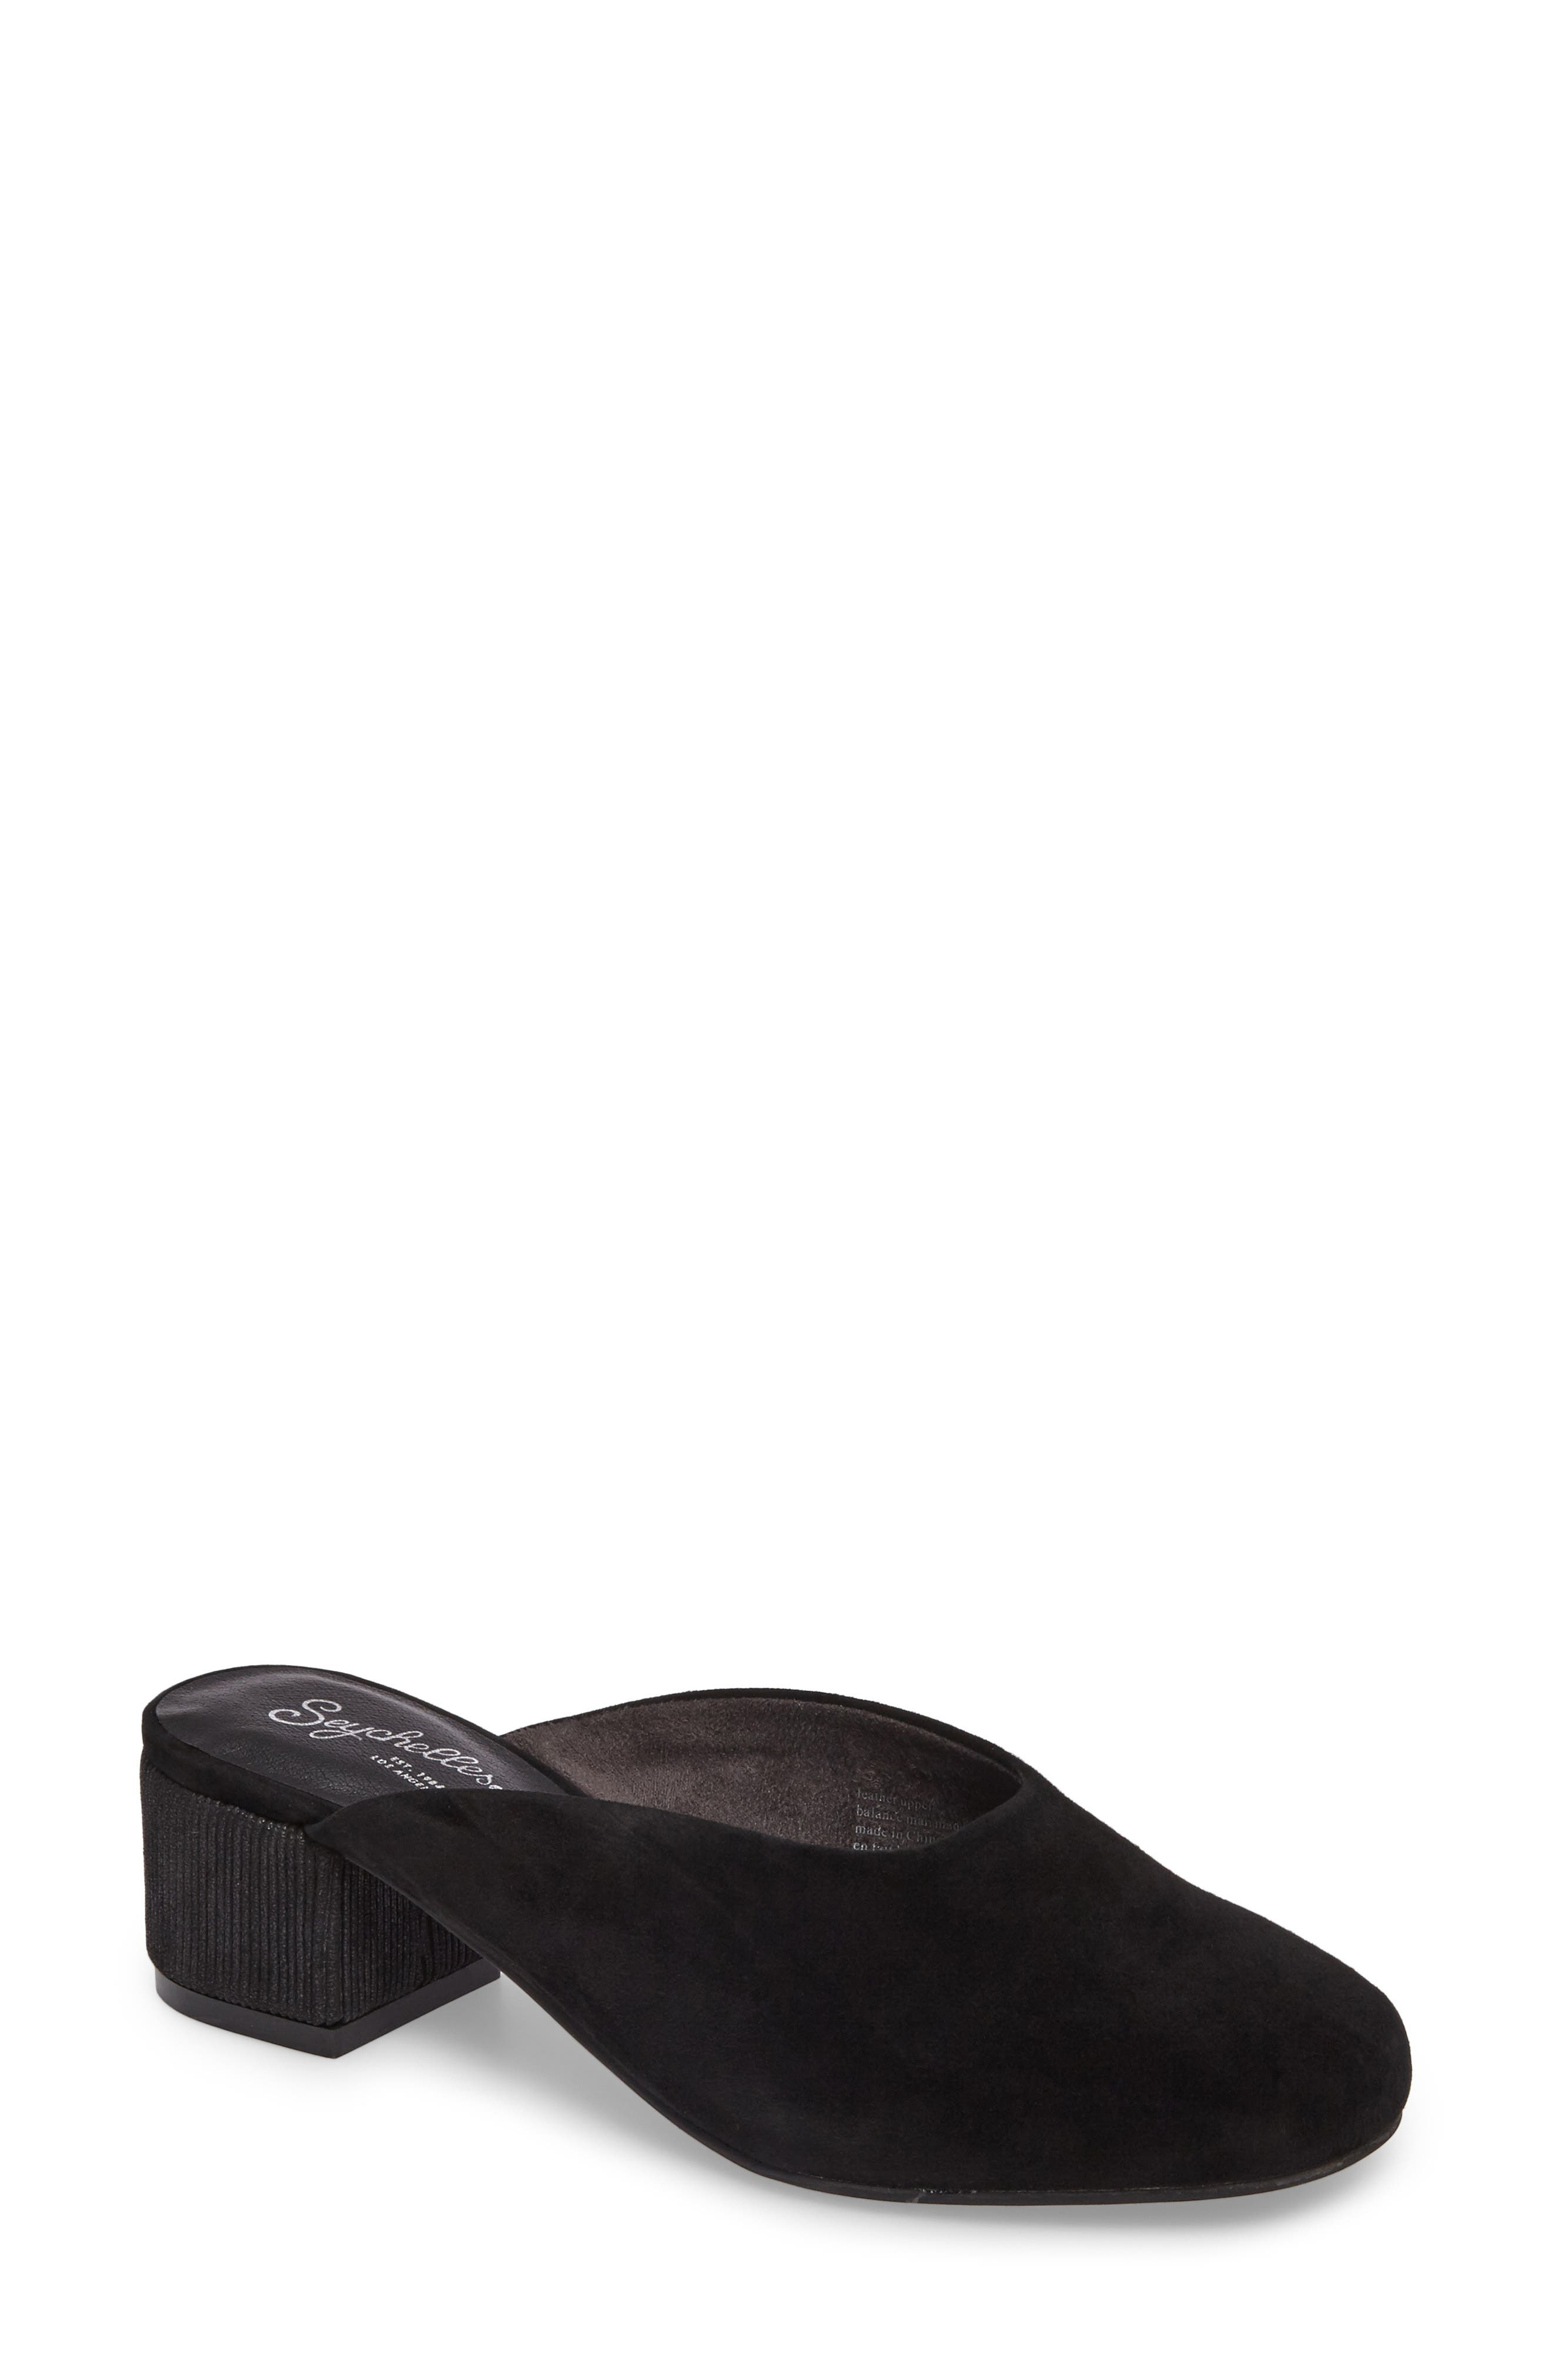 Chorus Mule,                             Main thumbnail 1, color,                             Black Suede